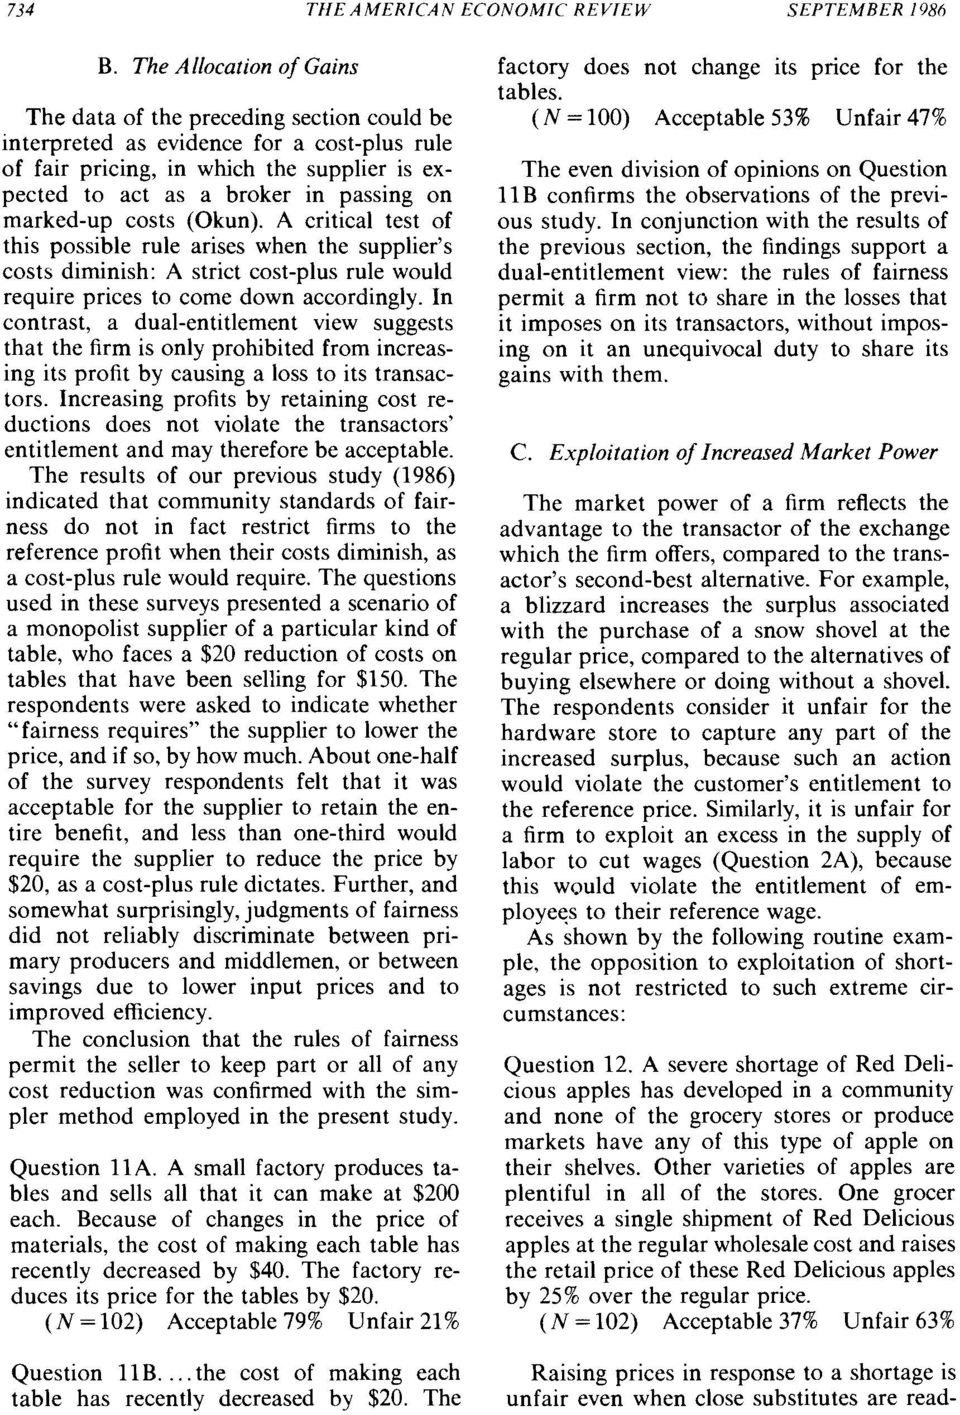 marked-up costs (Okun). A critical test of this possible rule arises when the supplier's costs diminish: A strict cost-plus rule would require prices to come down accordingly.